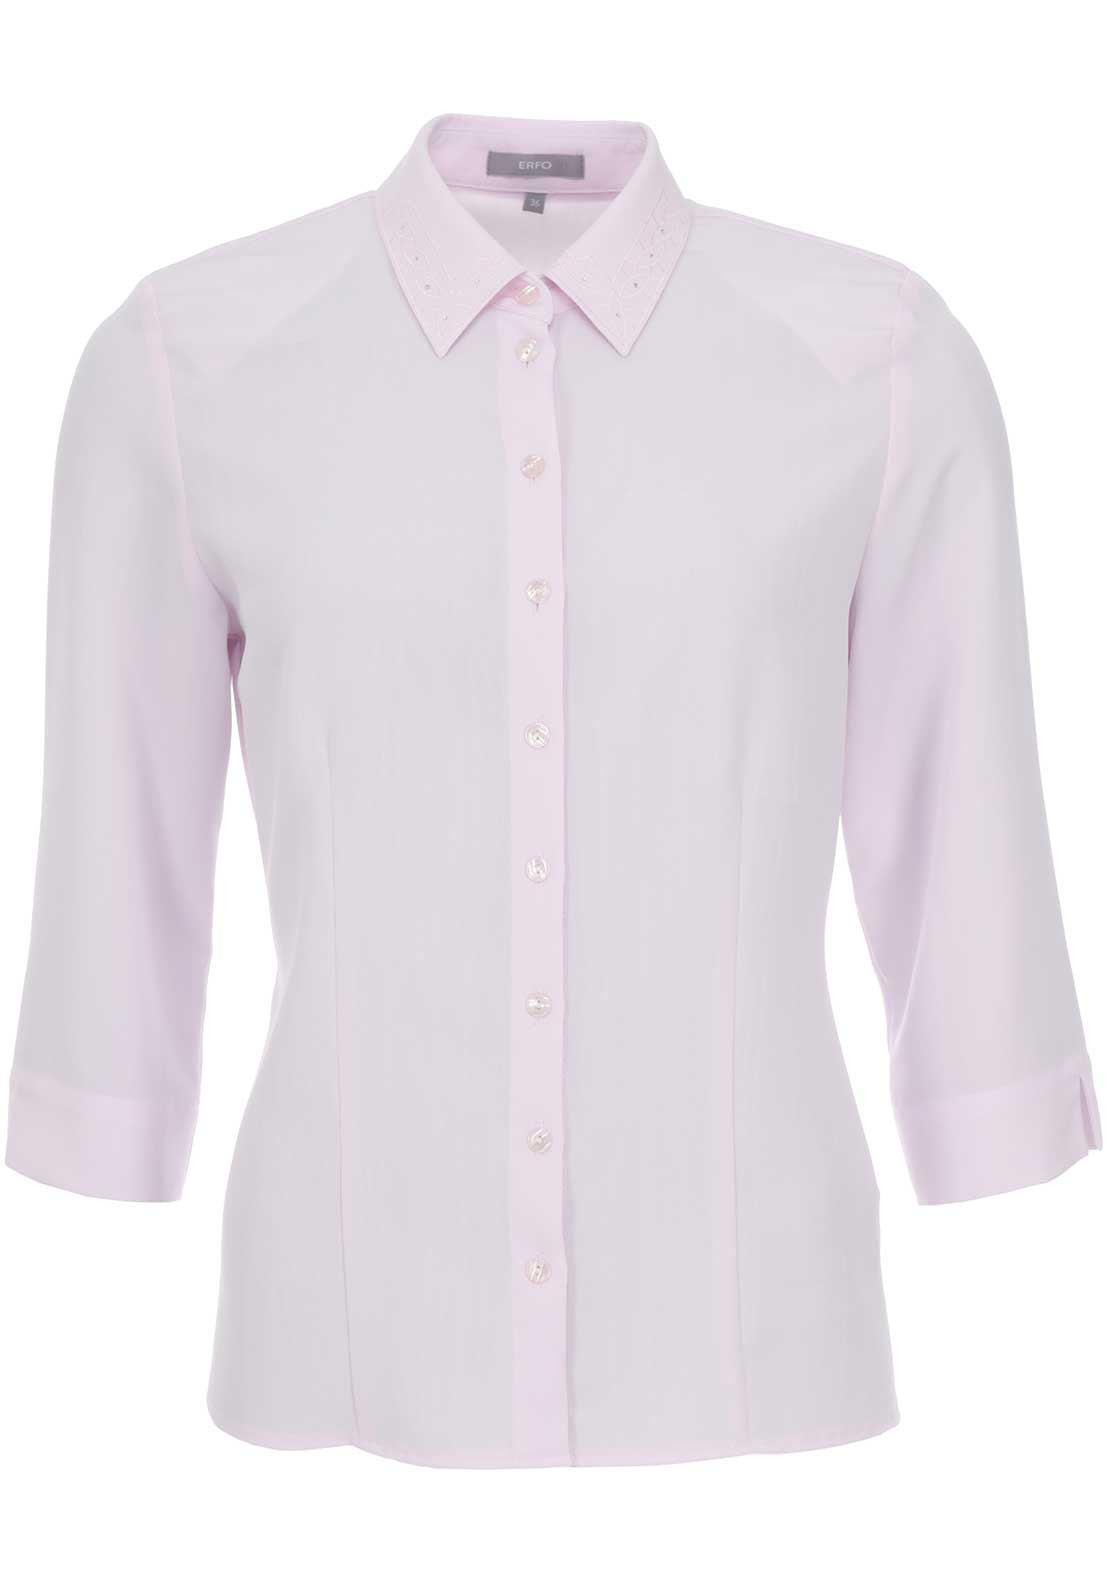 ERFO Embroidered Collar Blouse, Pink